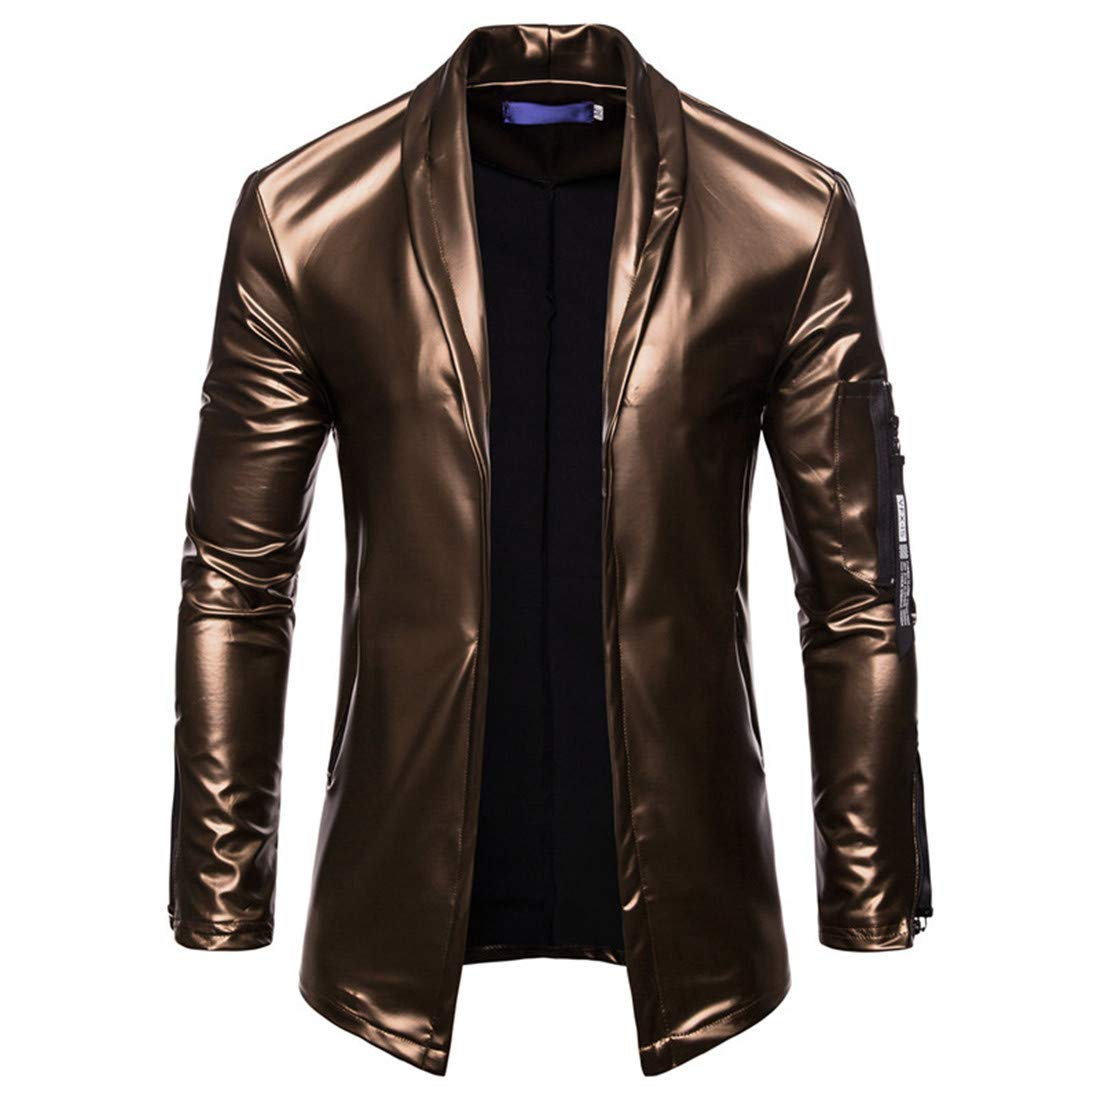 Domple Men's Moto Biker Full-Zip Faux Leather Coats Stretch Sport Coat Blazer Jacket Golden US 2XL